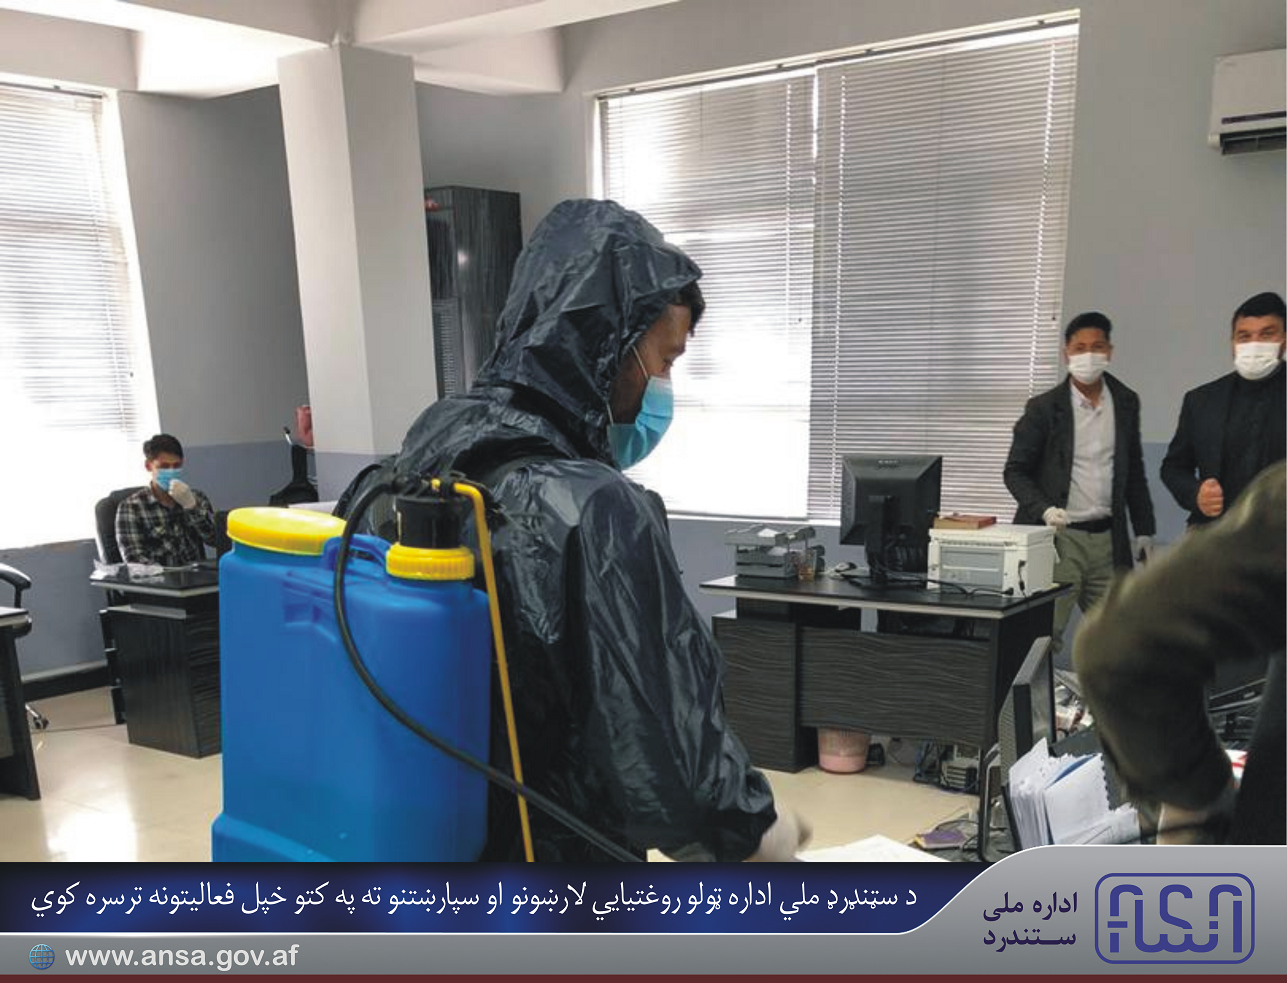 Afghan National Standards Authority conducts its activities in accordance with all health guidelines and recommendations.